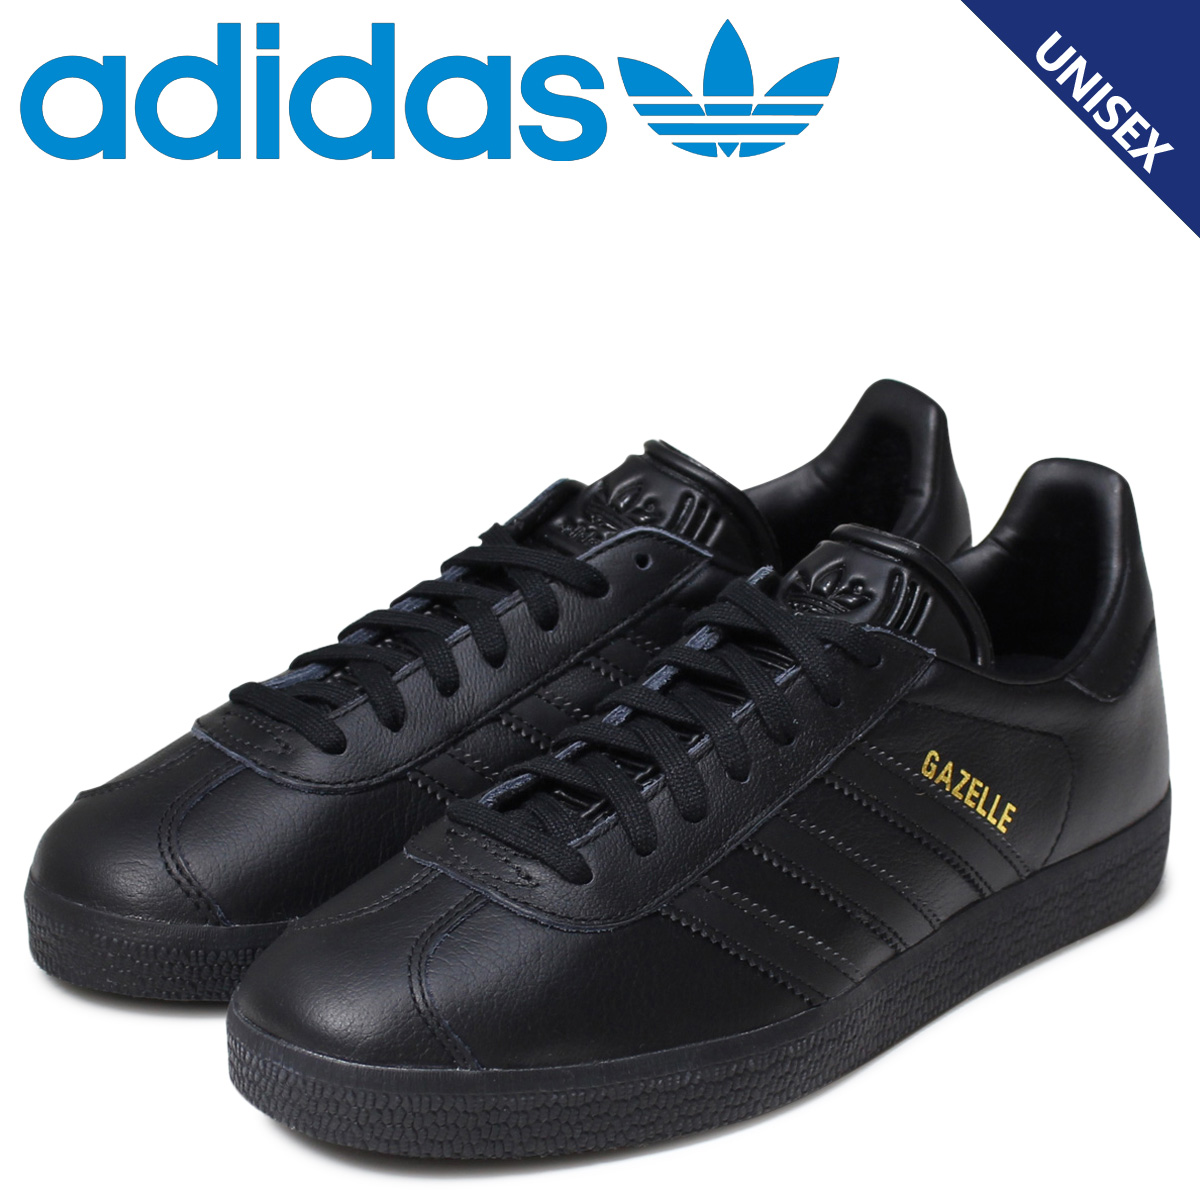 adidas shoes mens gazelle